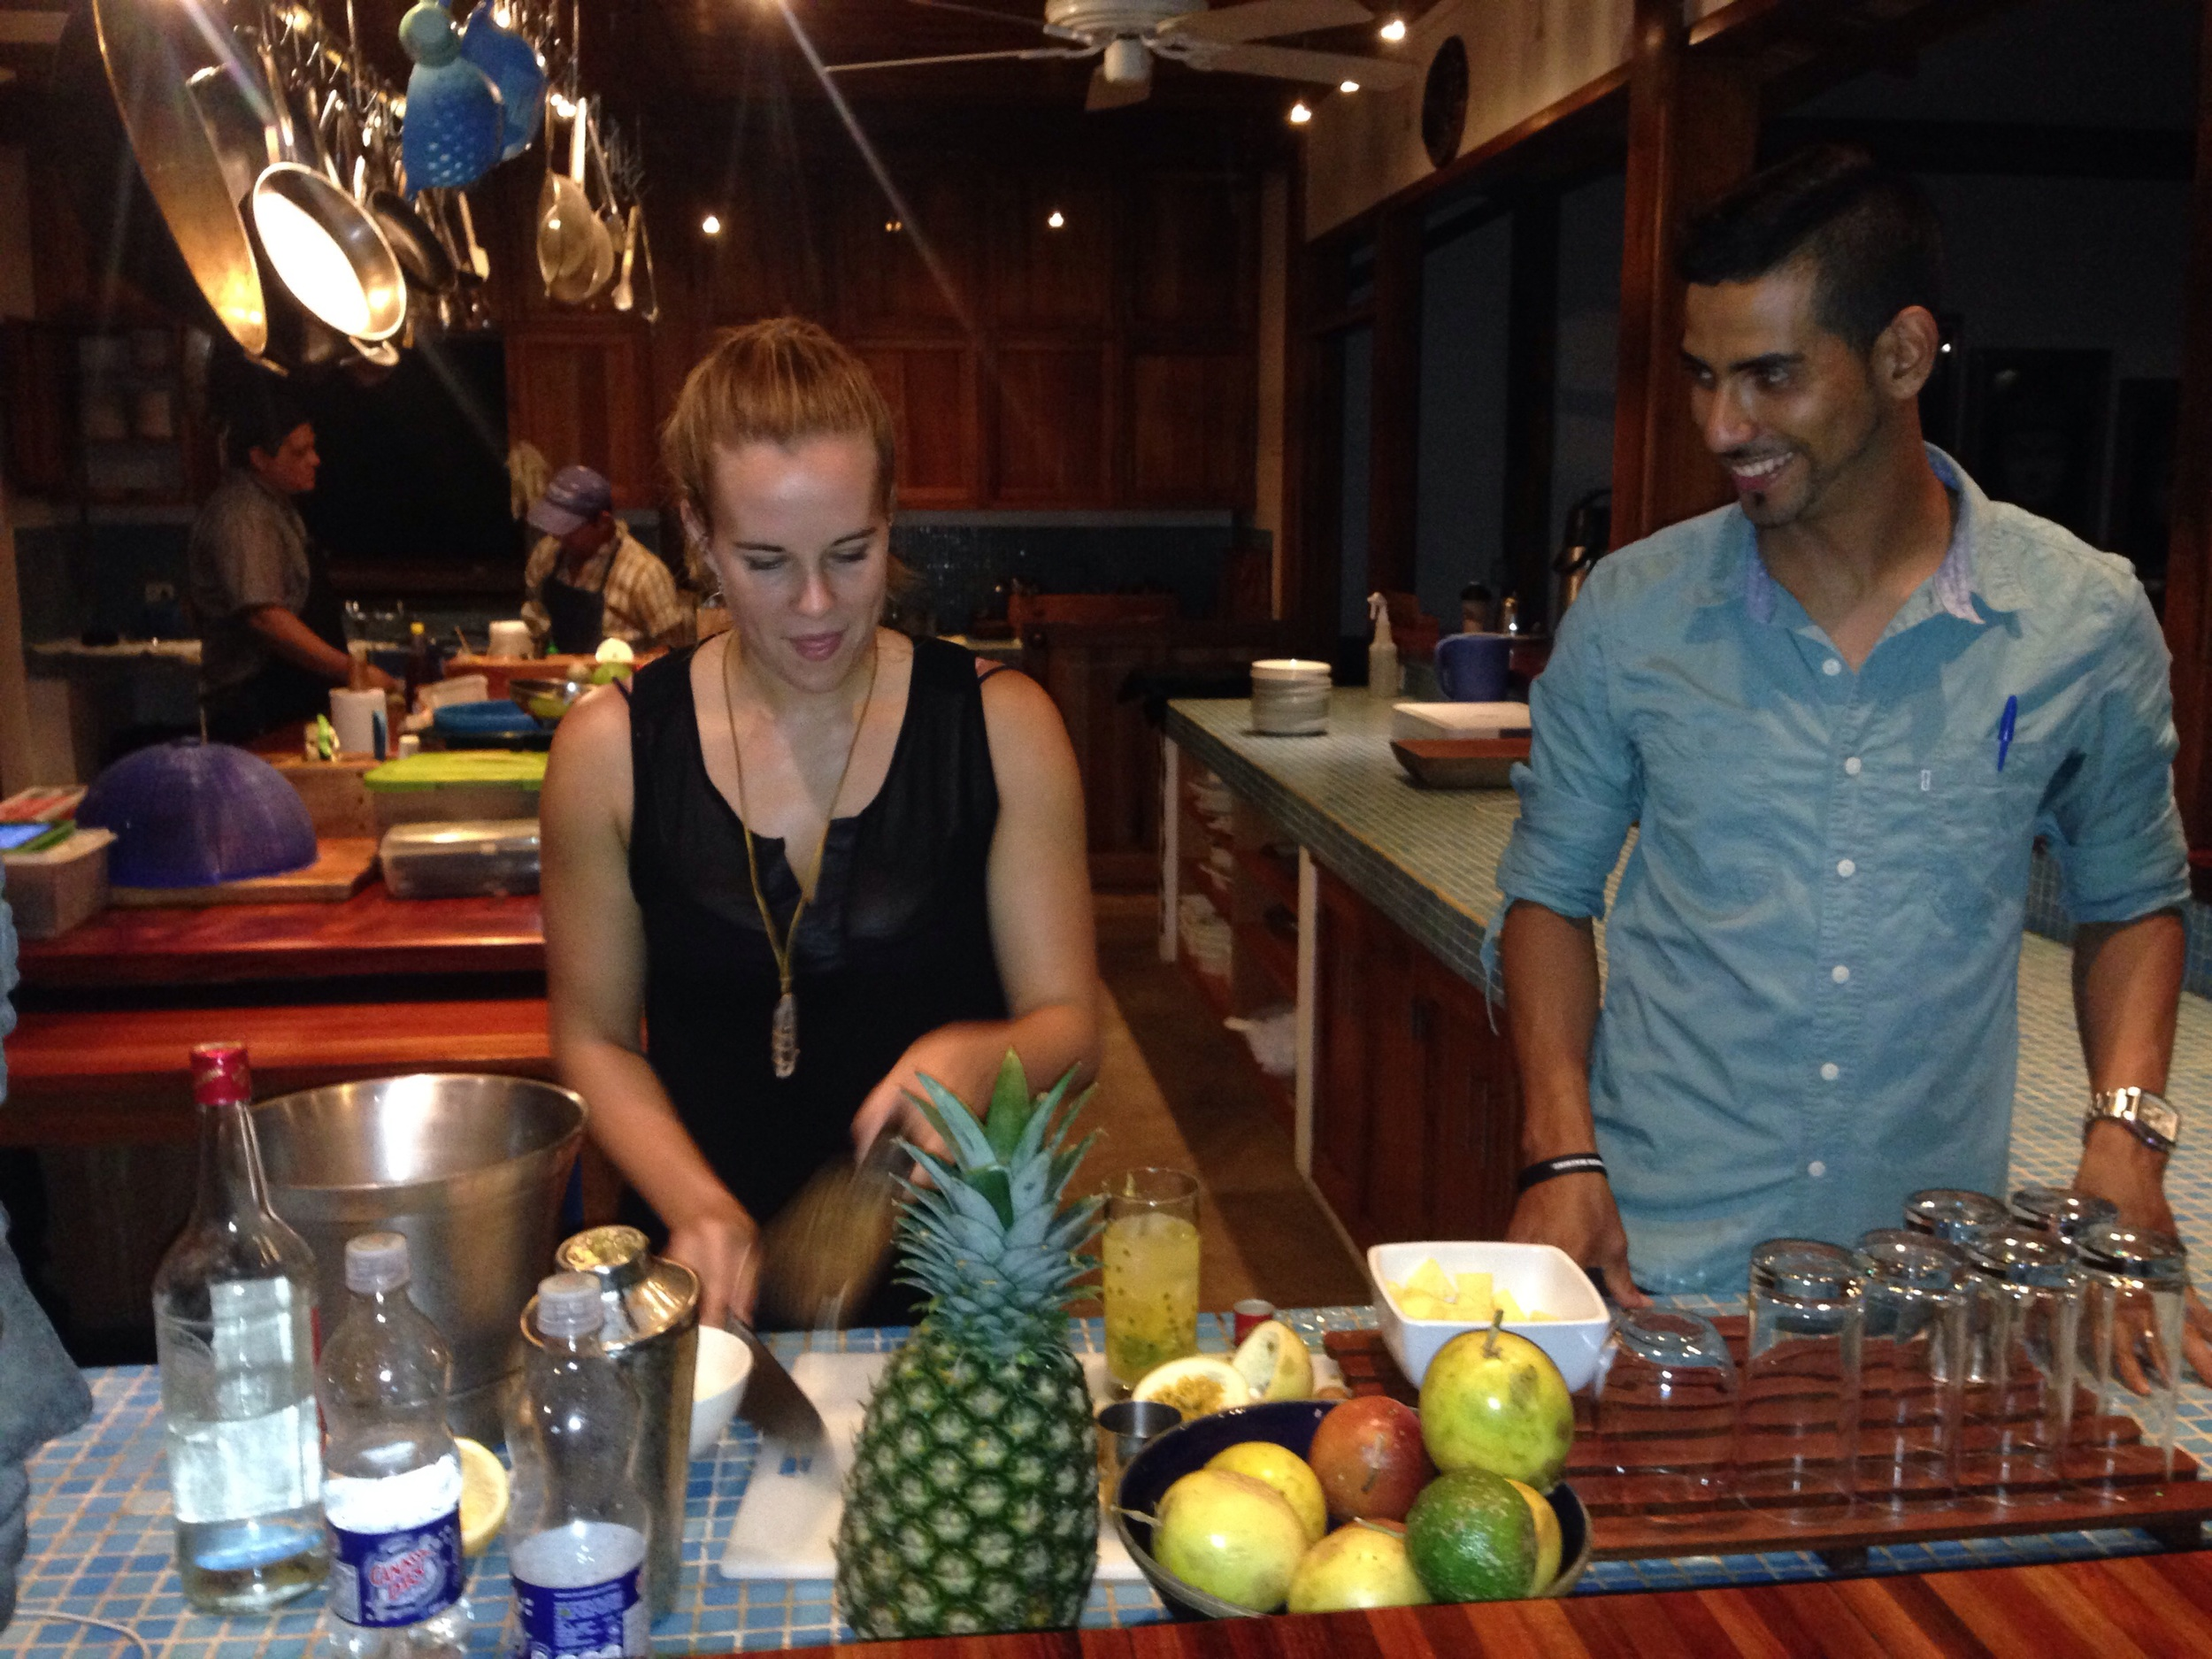 """That's Casey from """"A Cruising Couple"""". Our work here happened to coincide and we all quickly bonded (as all travel bloggers should, I'm sure!). This is Casey having fun as a guest bartender at cocktail hour before dinner. She makes 'em strong."""